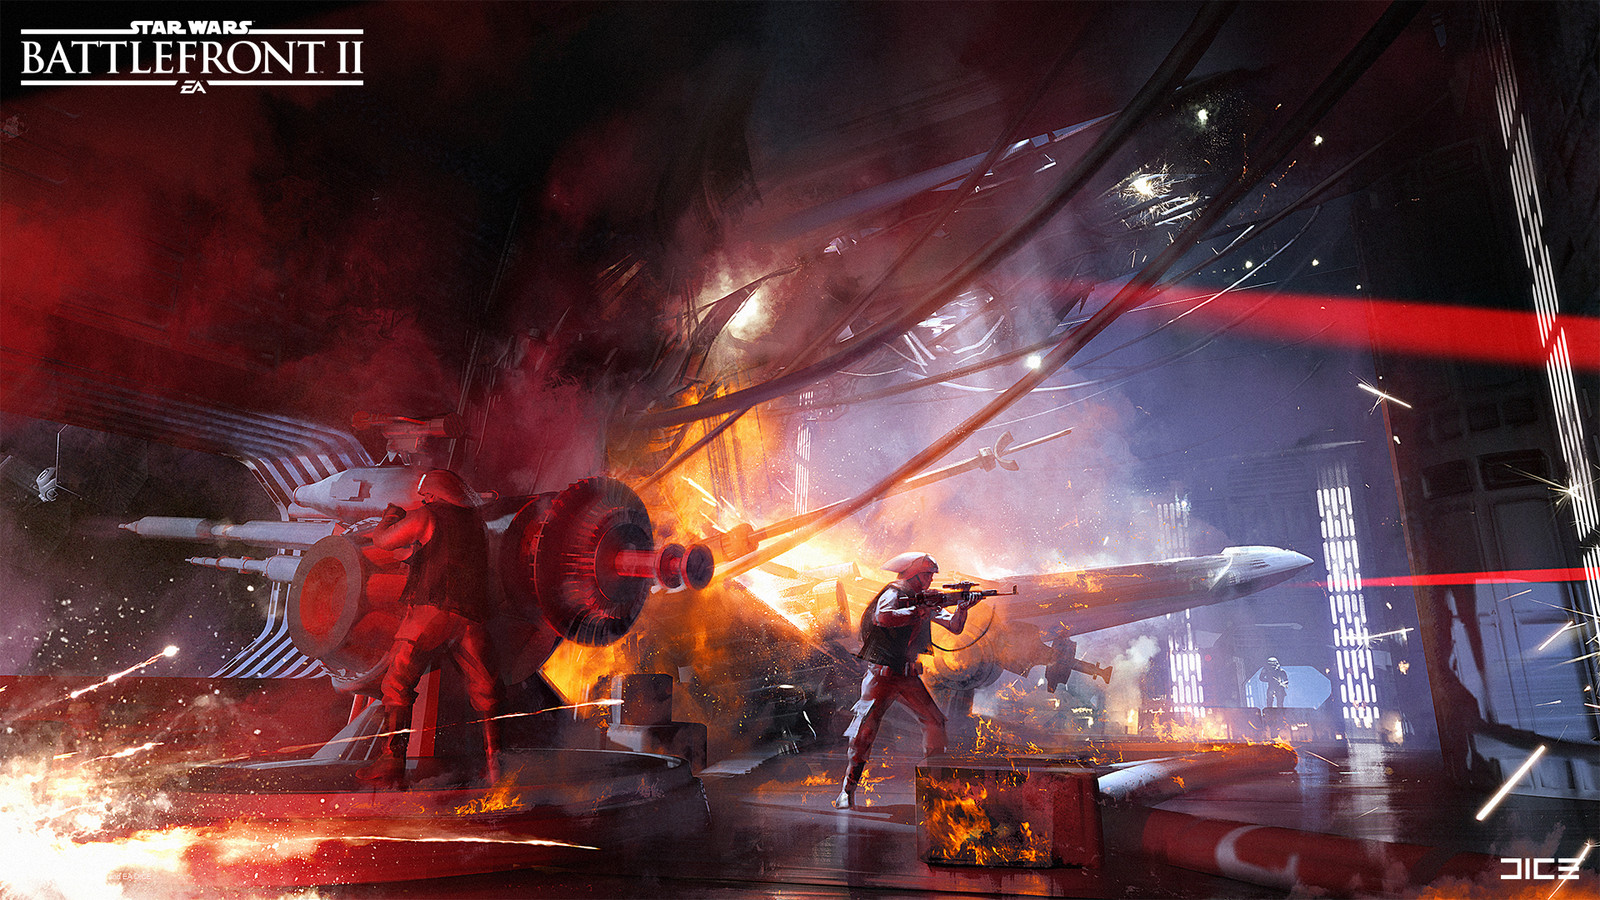 Some brave rebels have kamikazed into the Death star 2, hijacking the gunner stations.